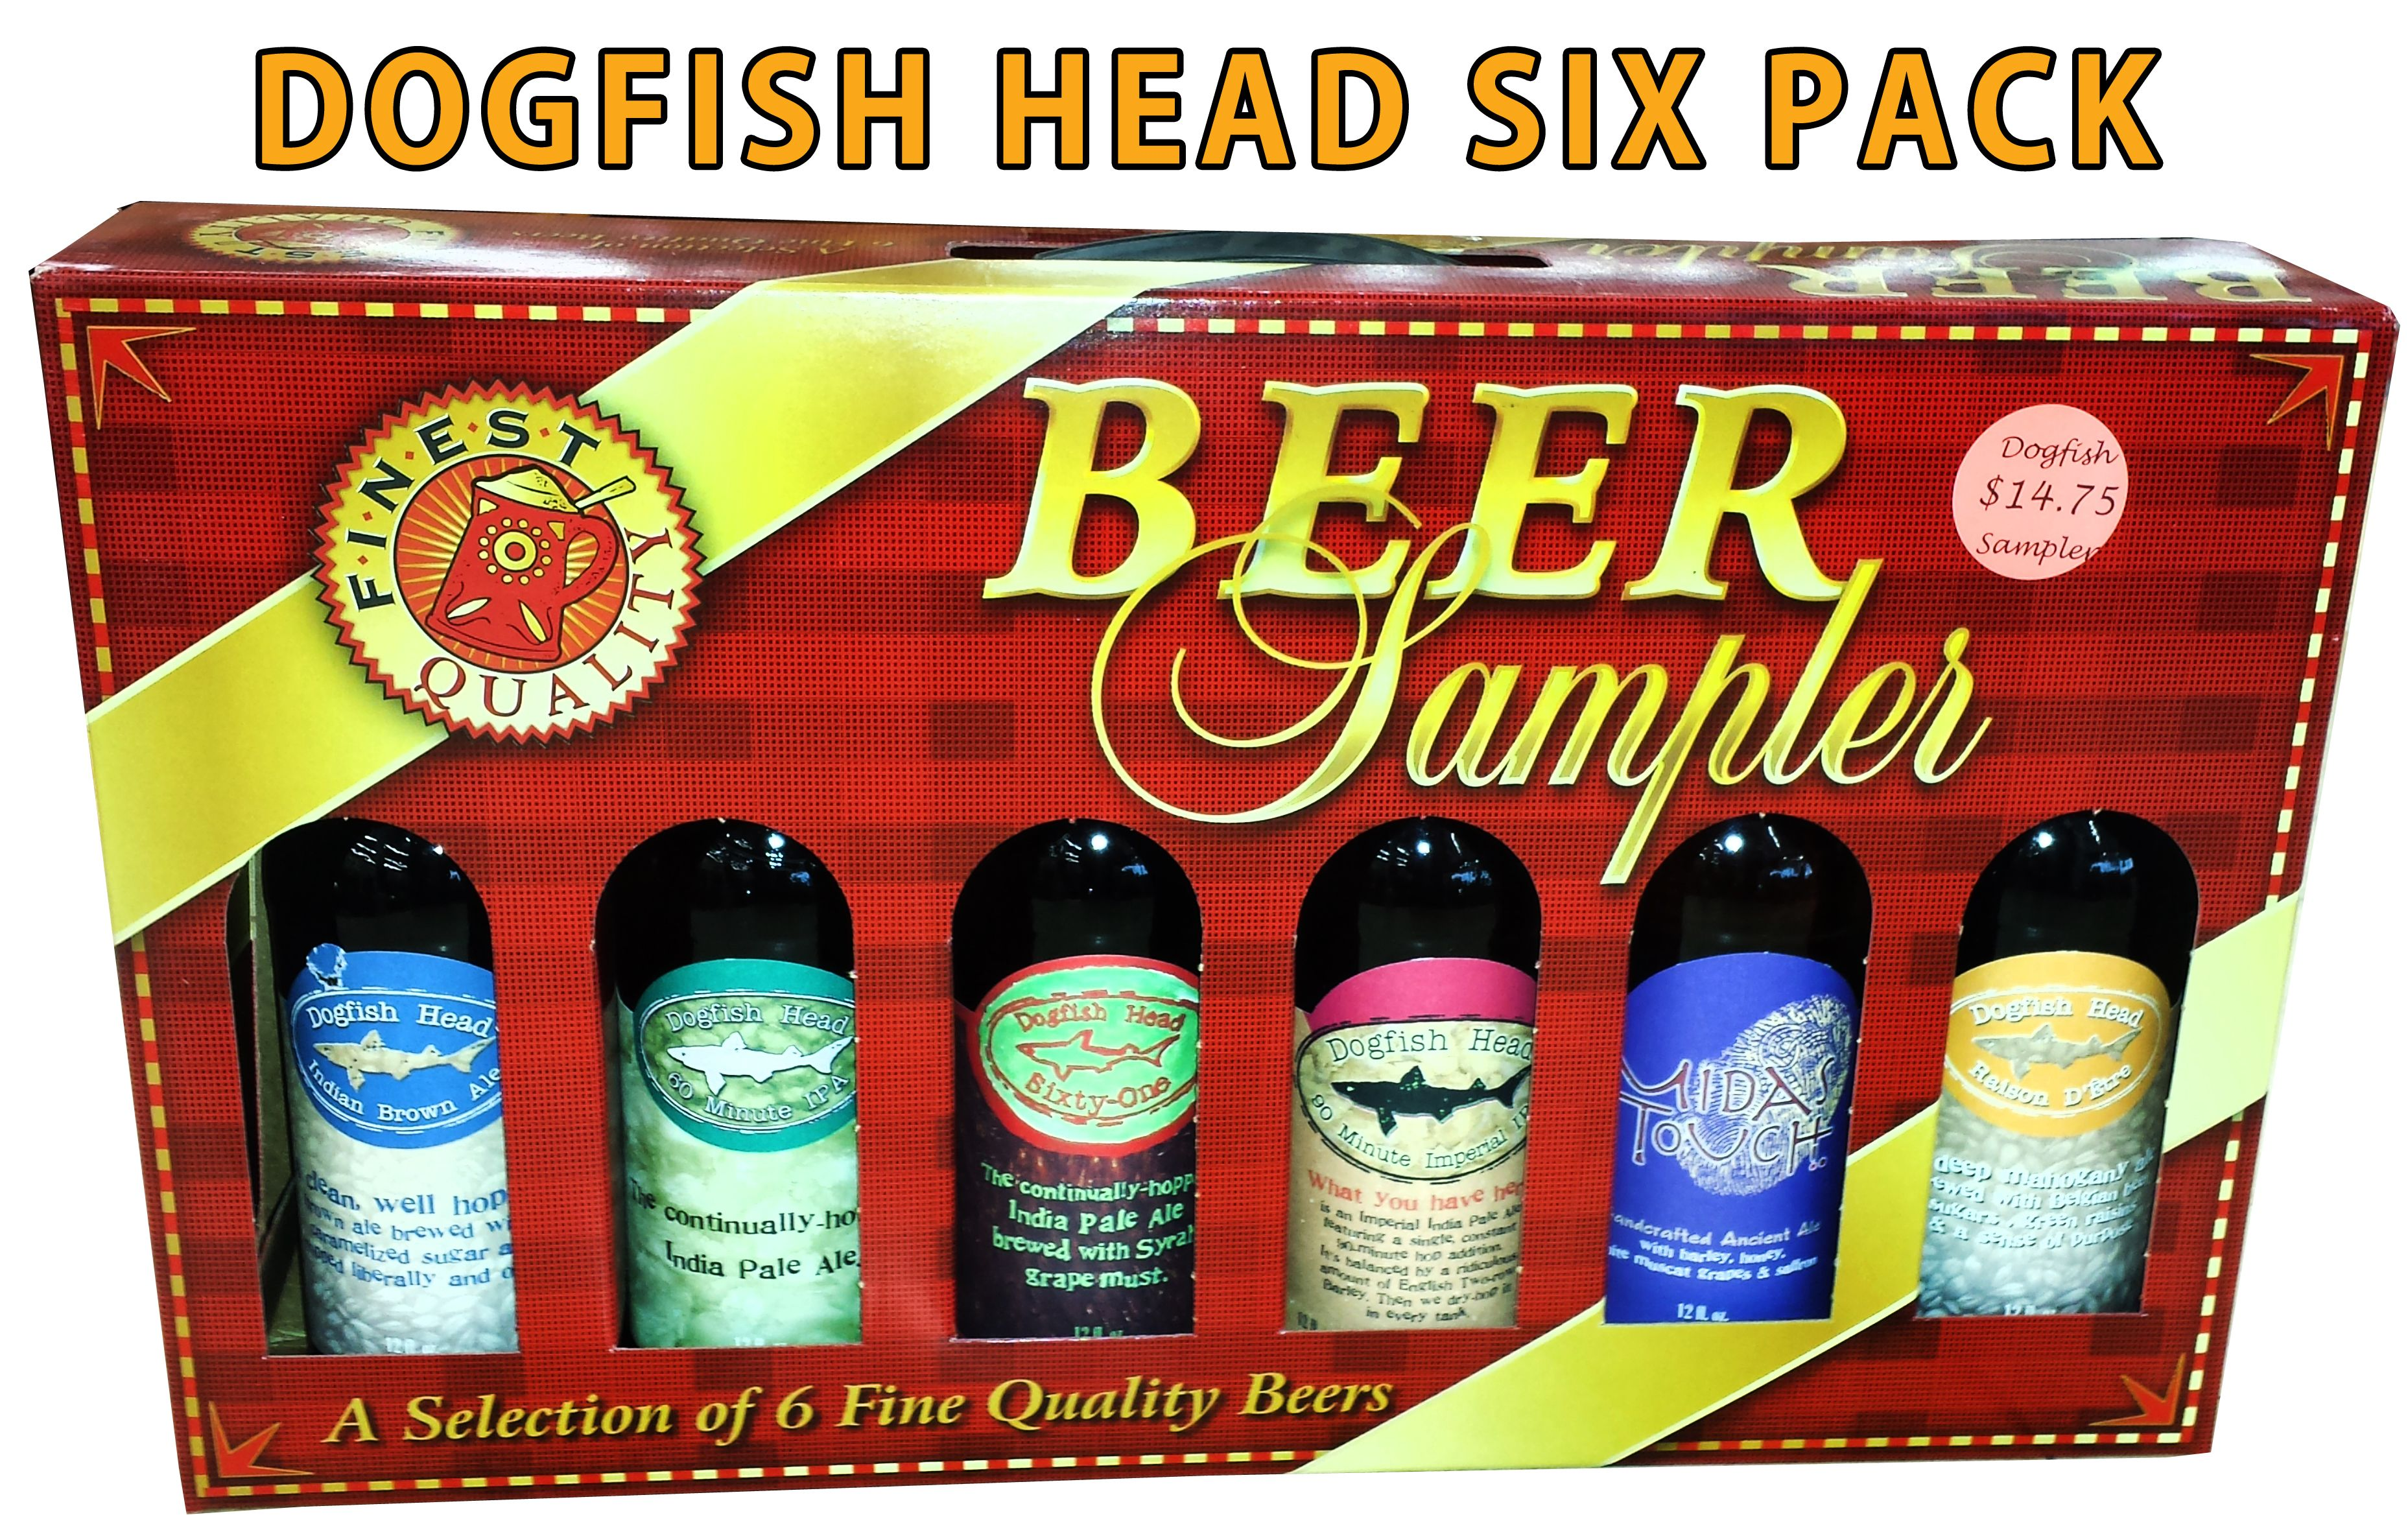 This Is Awesome Sixpack Dogfishhead I Am Not Crying I Just Have Something In Both My Eyes Found At Outlet Liquors Beer Packaging Beer Sampler Beer Gifts